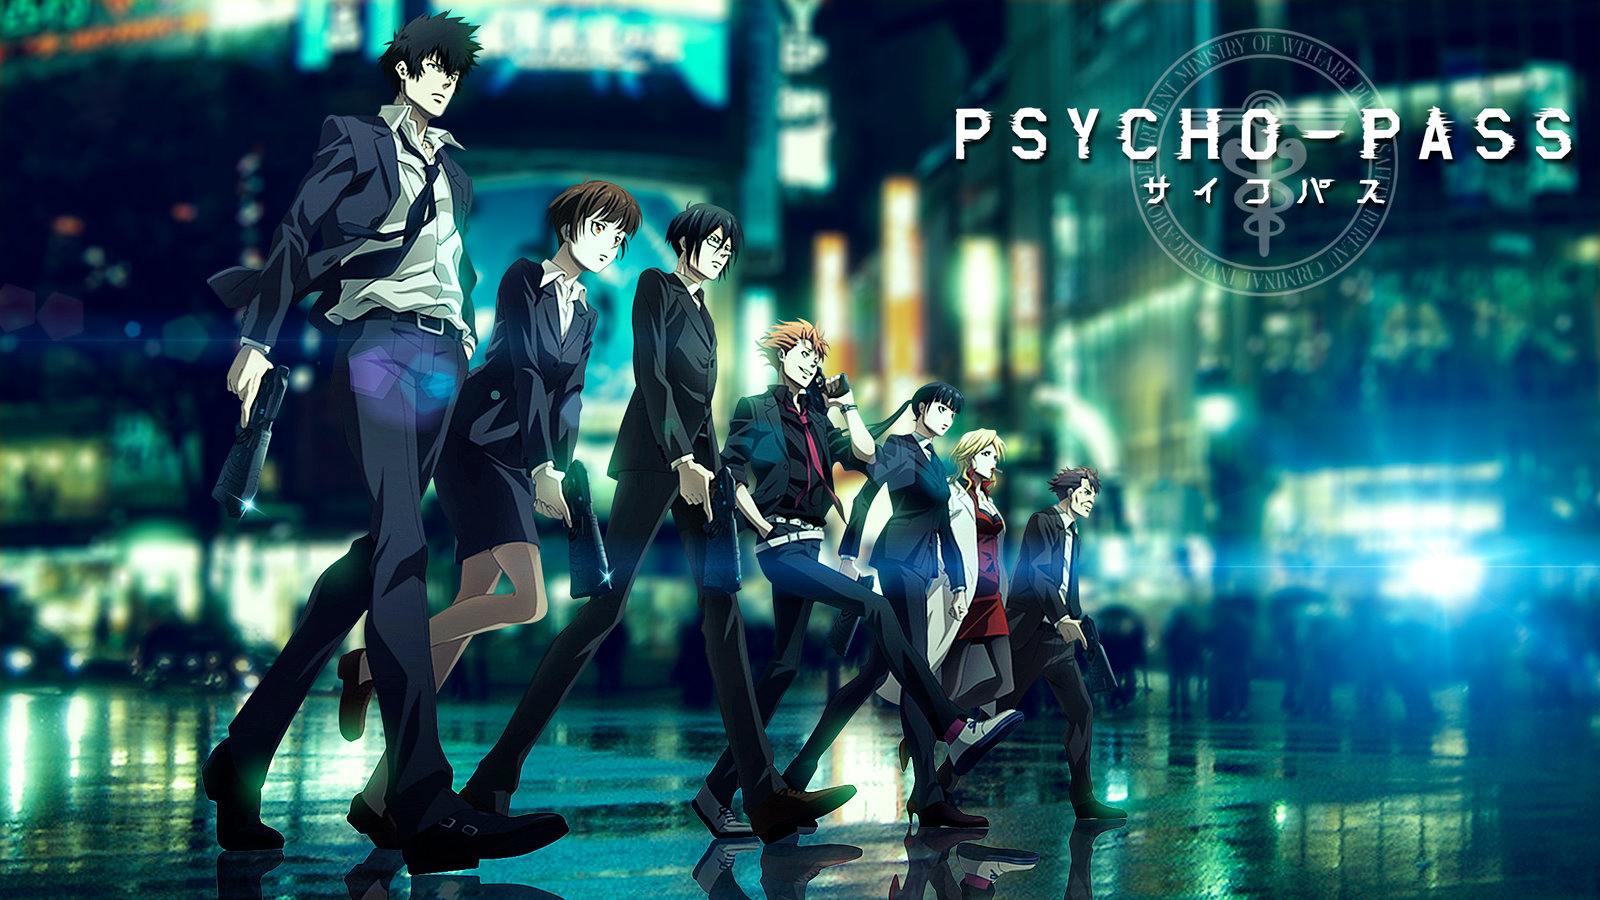 Psycho Pass Season 1 An Outstanding And Thought Invoking